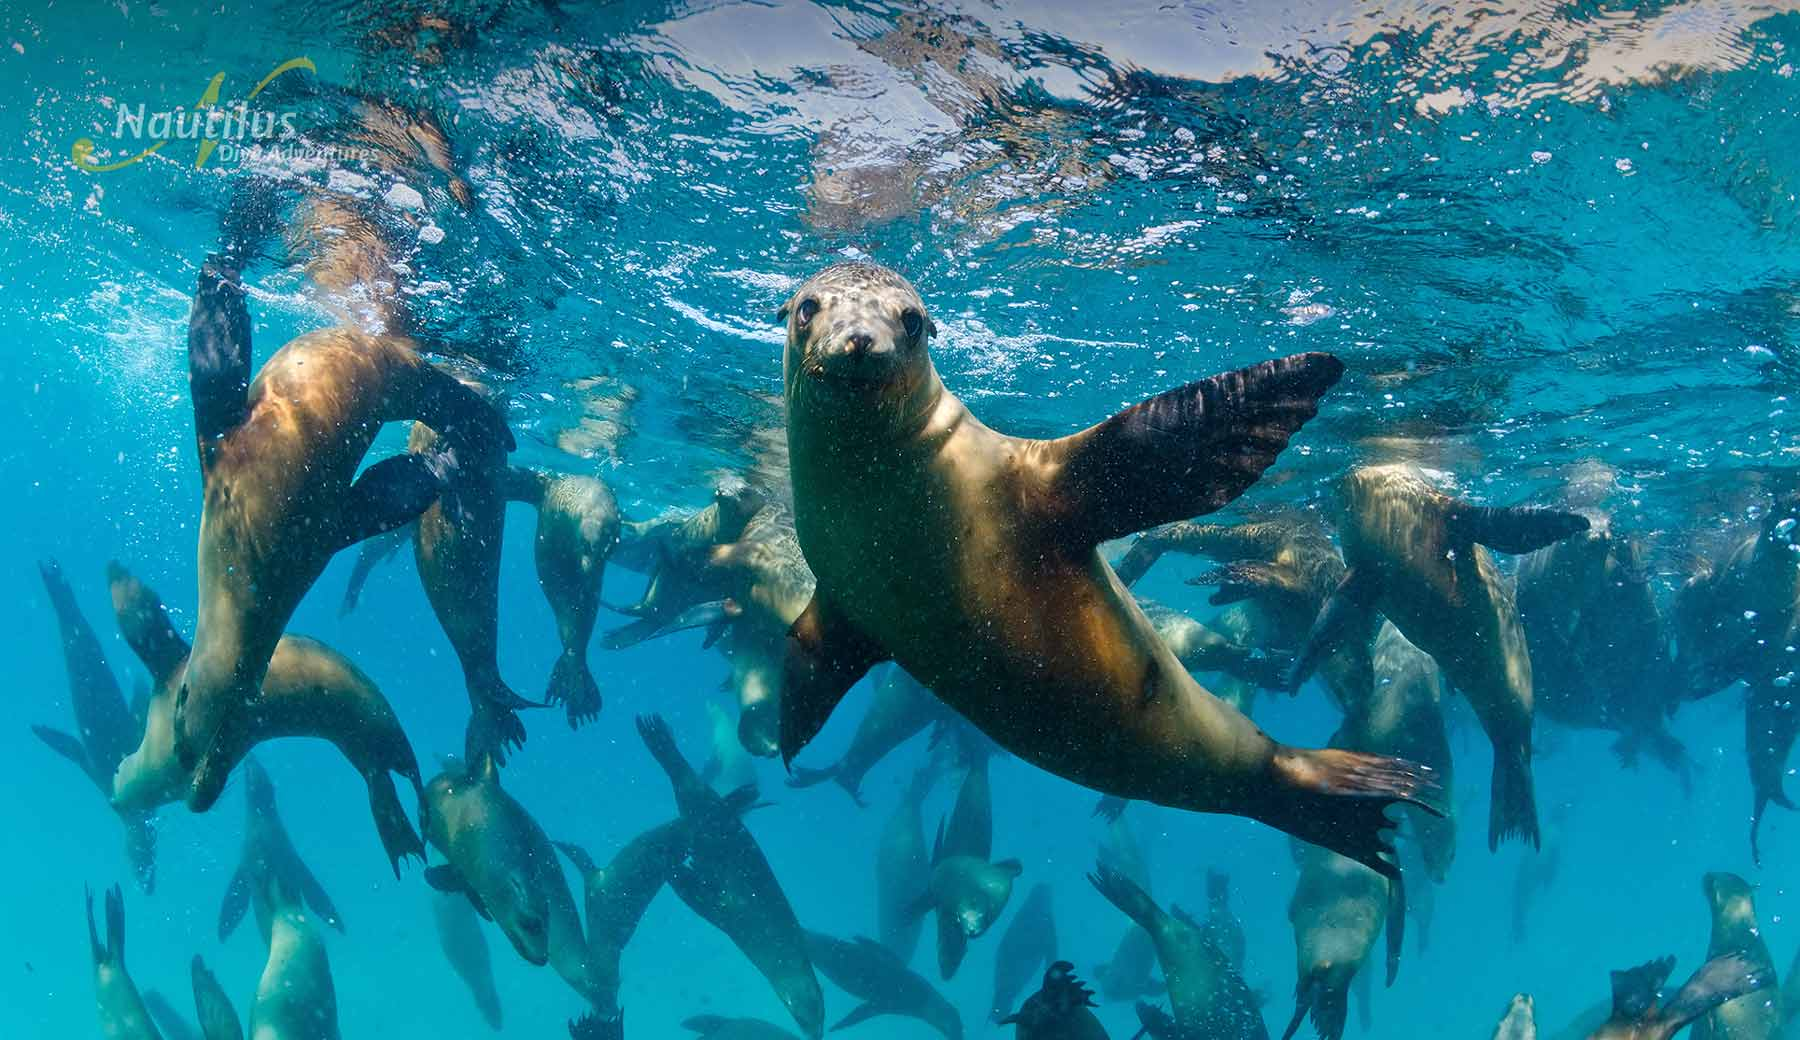 Encounters with Sea lions are amazing